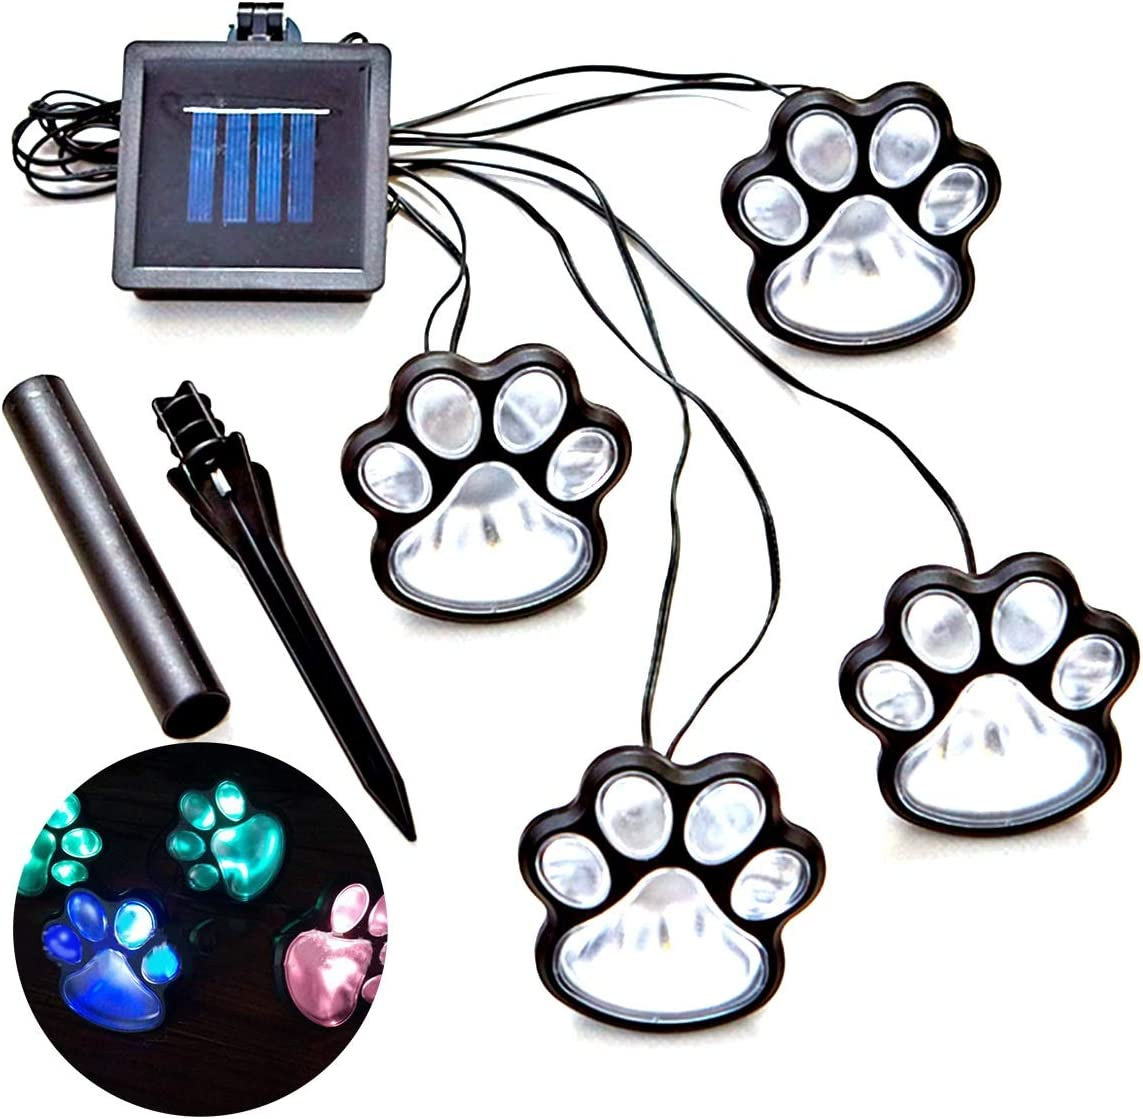 LED Paw Decor Solar Light, 4 Solar Dog Cat Animal Paw Print Lights Garden Outdoor LED Path Lamp for Garden Patio Yard Decor Walkway Color Multi-color color random